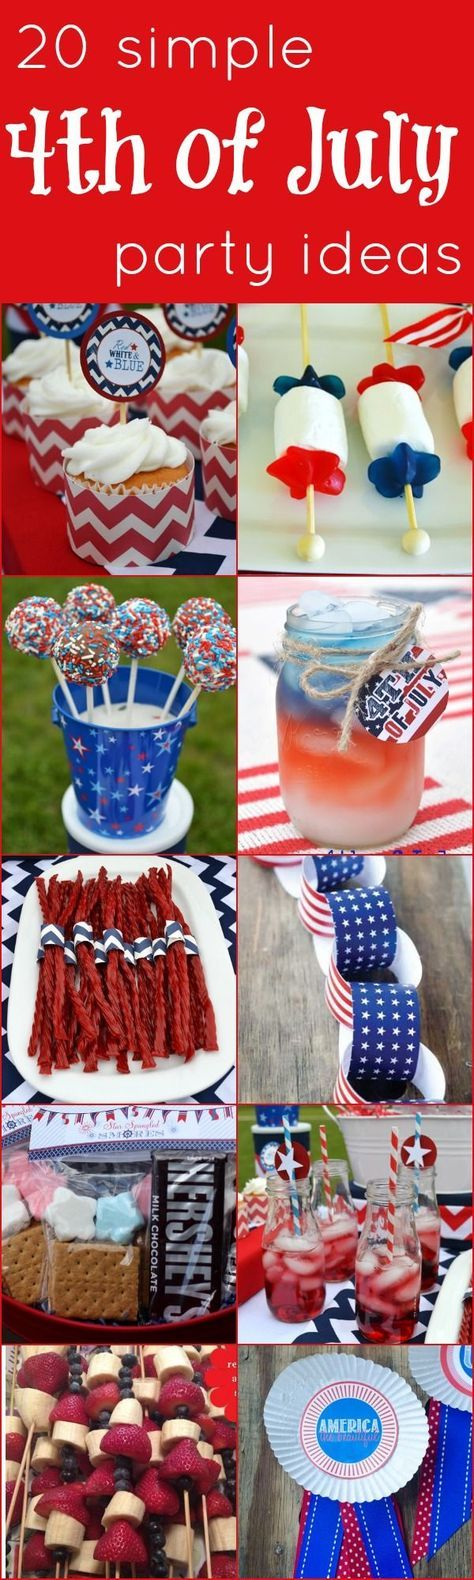 25 best ideas about patriotic party on pinterest 4th of for 4th of july celebration ideas